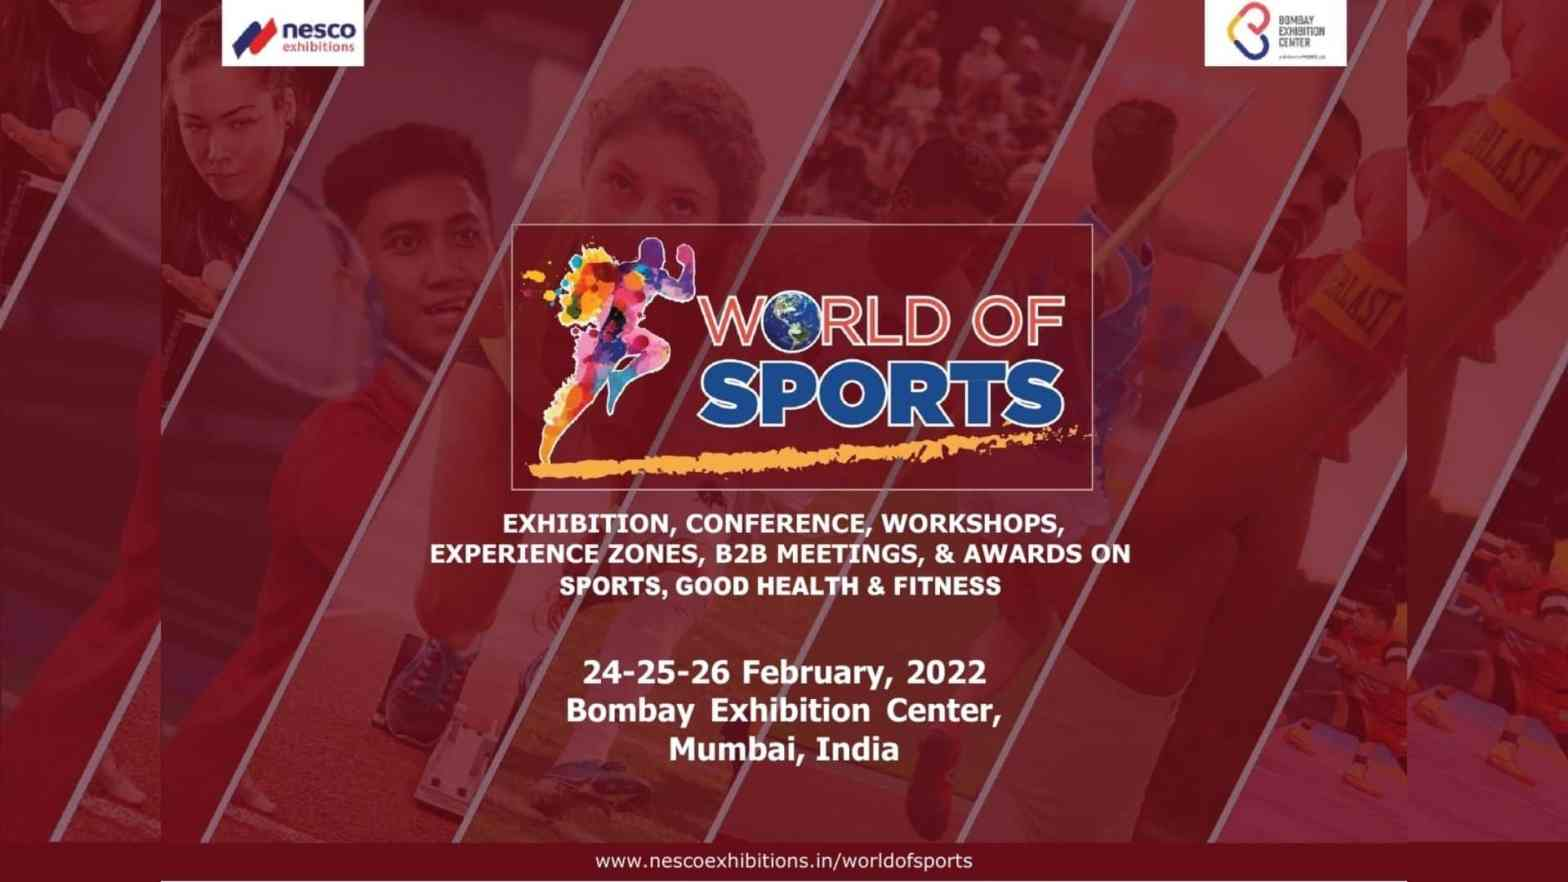 Nesco Partners With The SportsGrail For World Of Sports International Exhibition And Conference On Sports